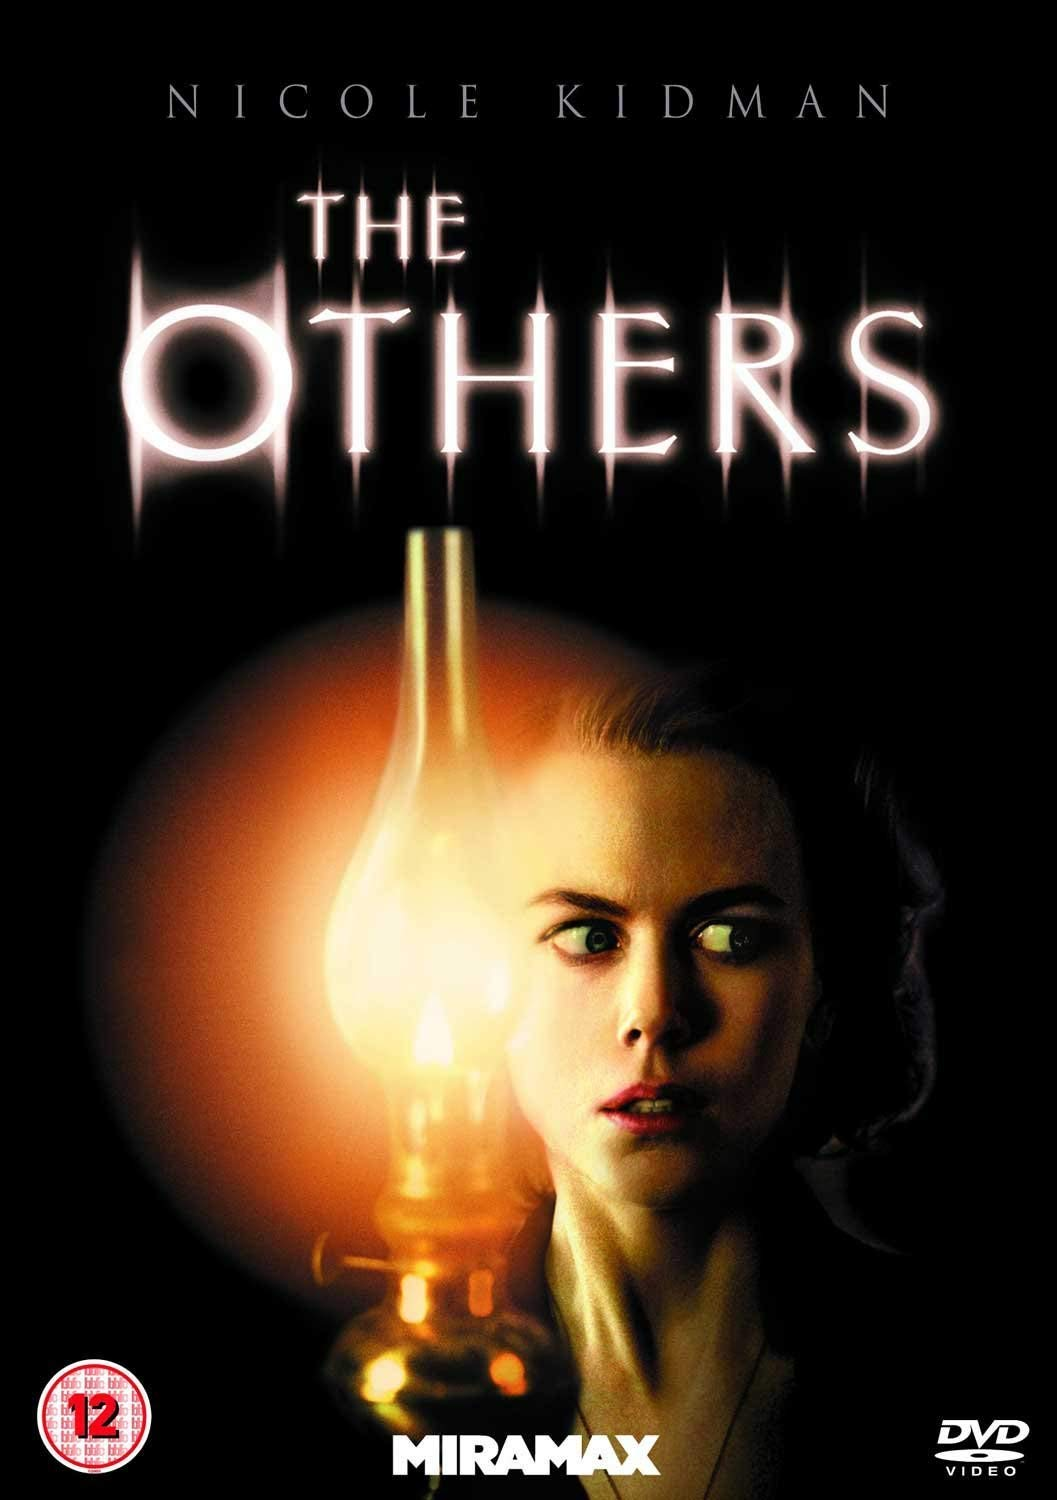 THE OTHERS (2001) [IMPORT]: Amazon co uk: Nicole Kidman: DVD